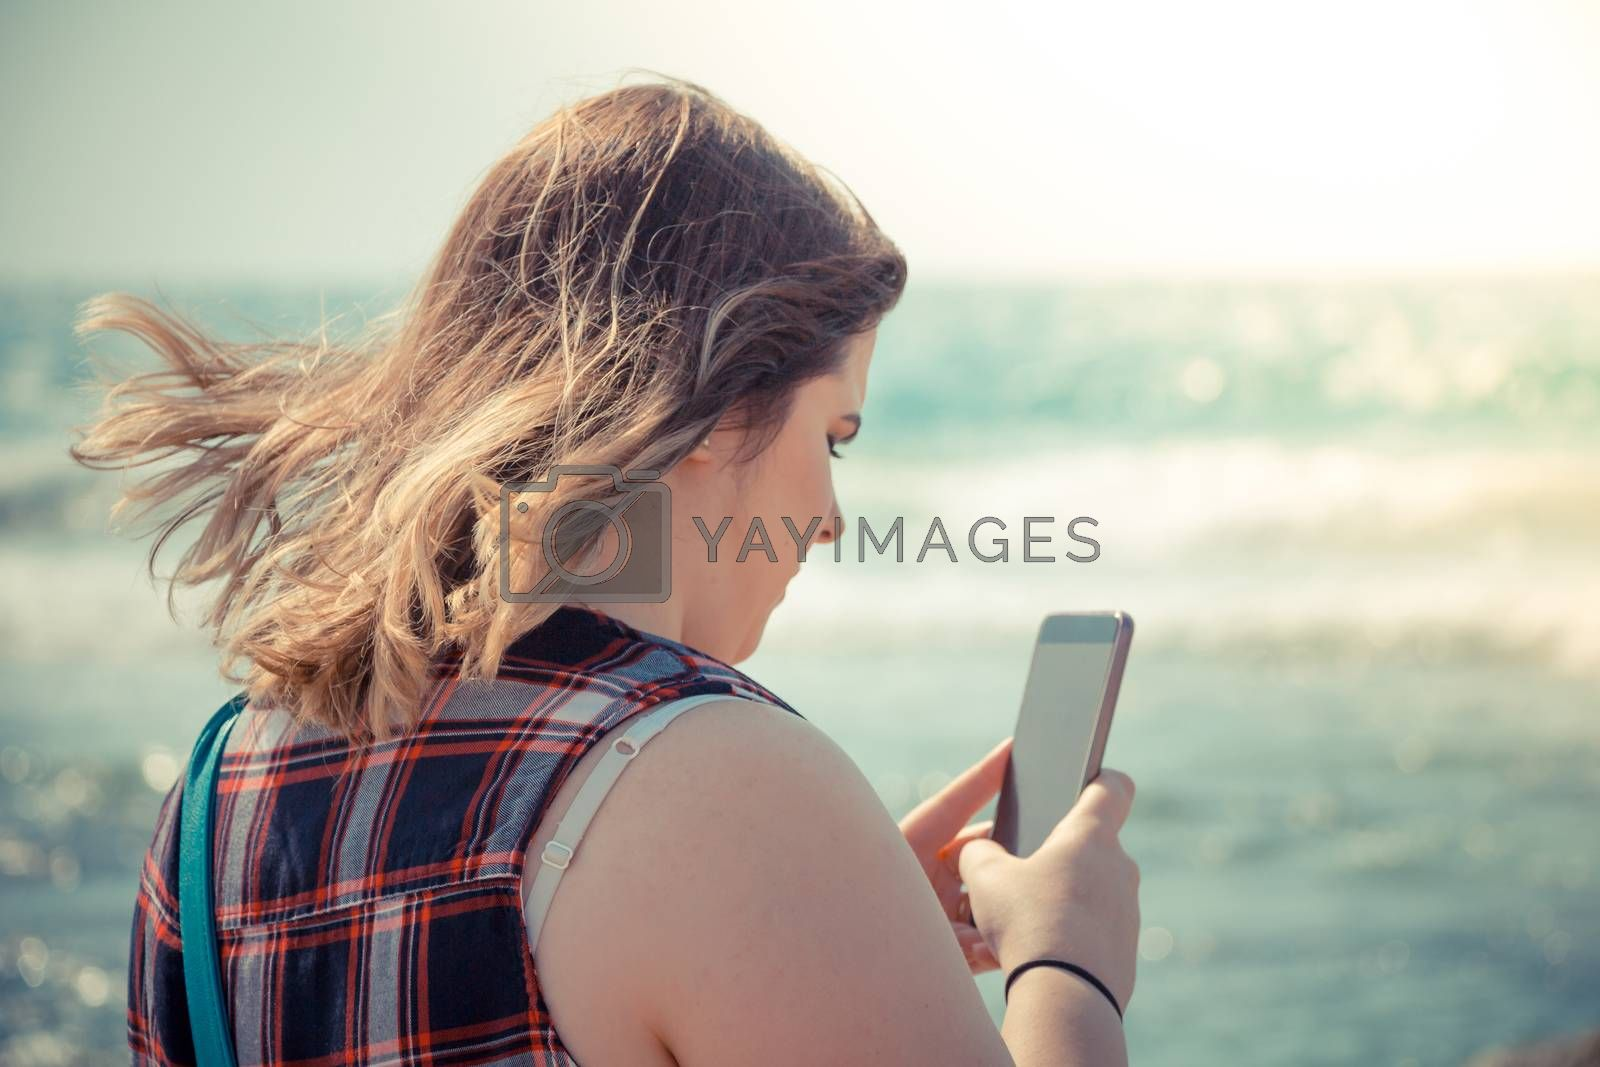 Woman using her smartphone outdoors at the beach near the sea.